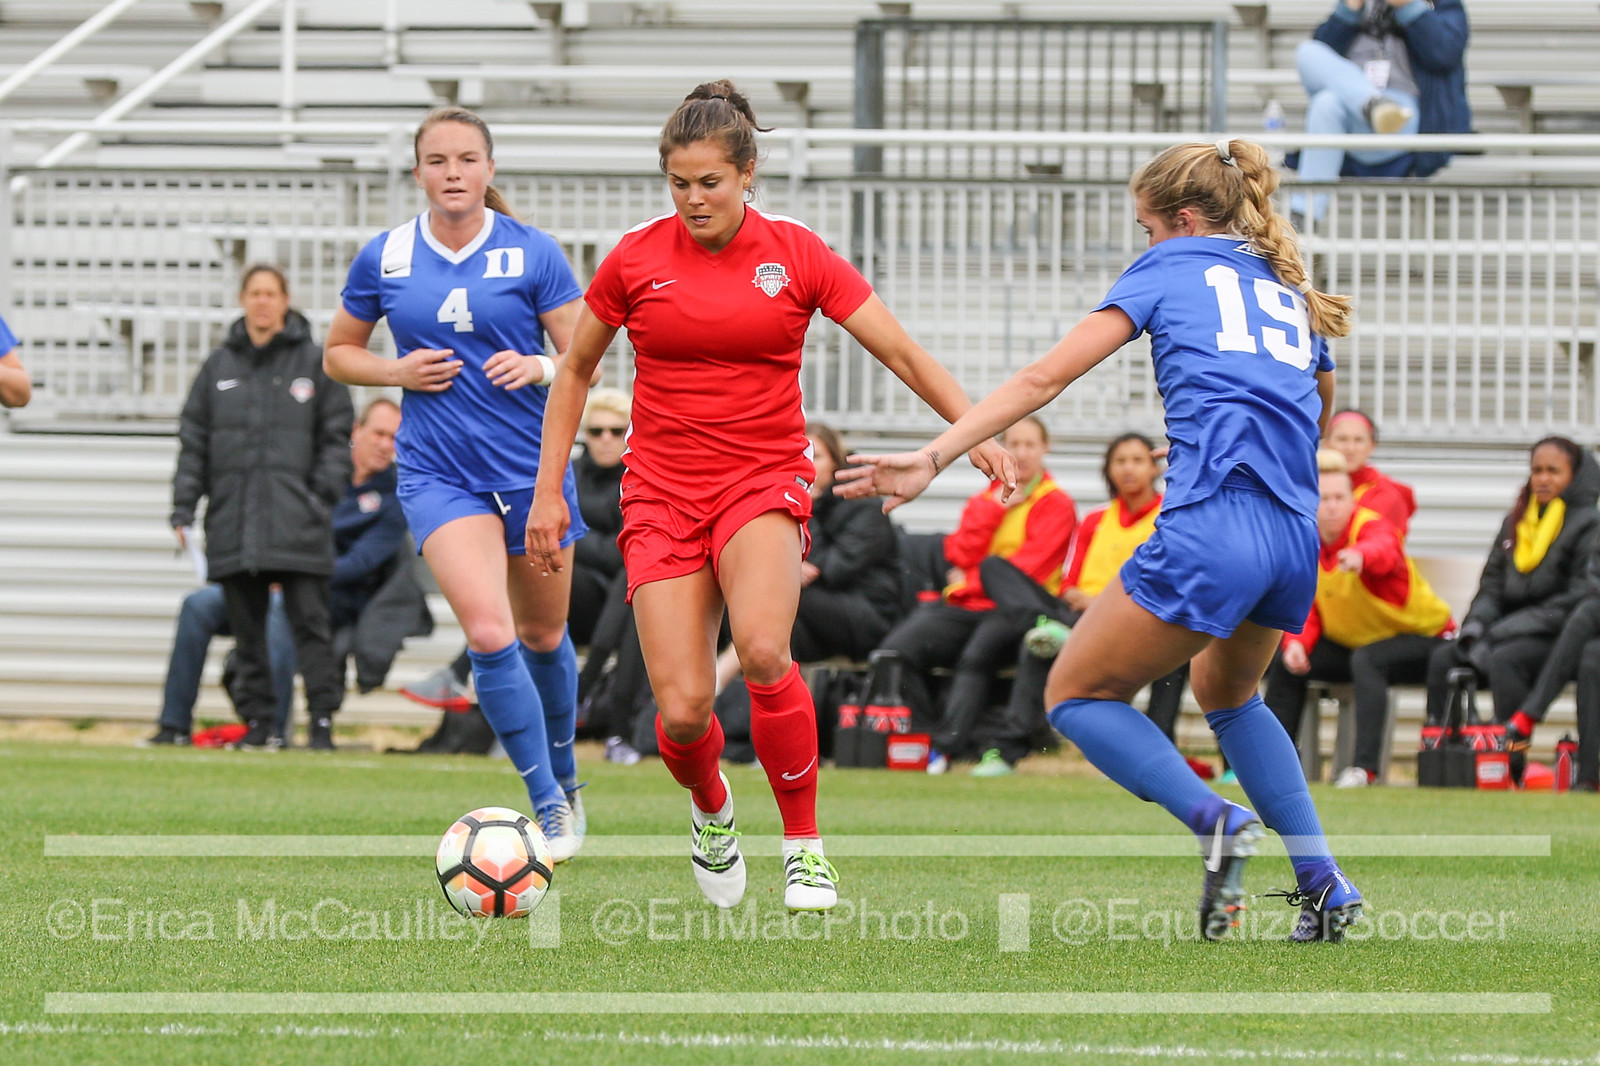 Katie Stengel was claimed off waivers by the Boston Breakers. (photo copyright EriMac Photo for The Equalizer)